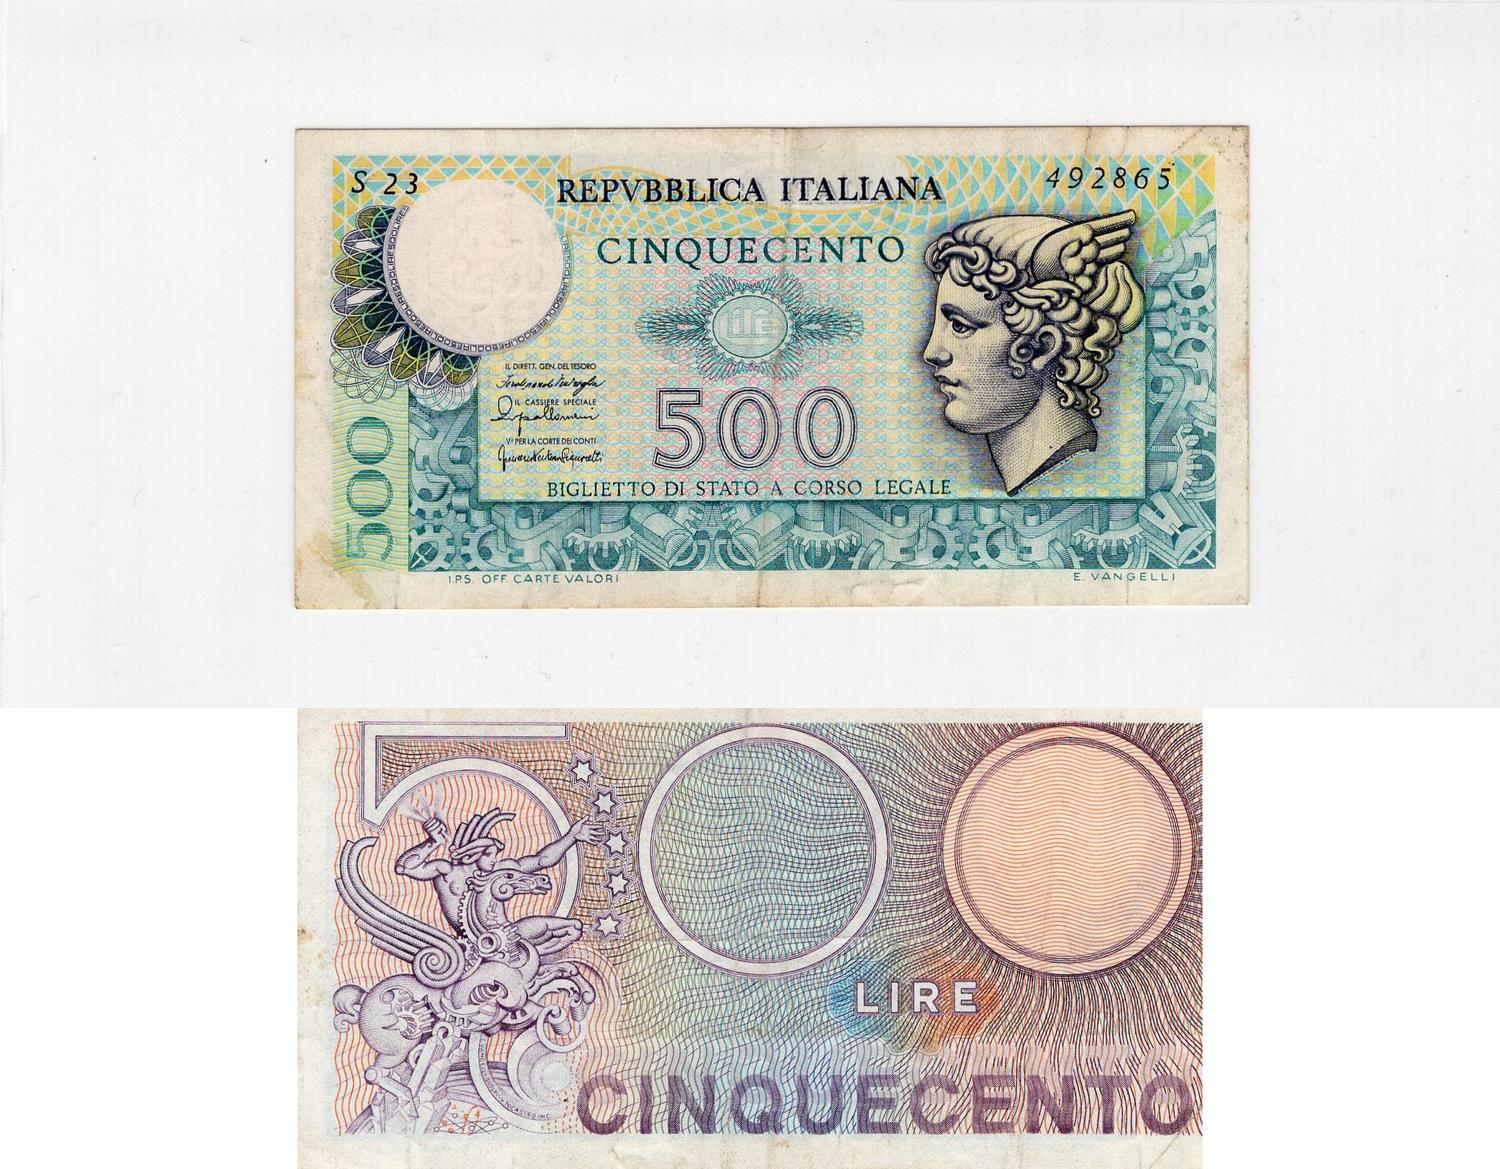 Italy 500 Lire 1976 Xf P95 Serial Number S23 492865 5 10 Usd